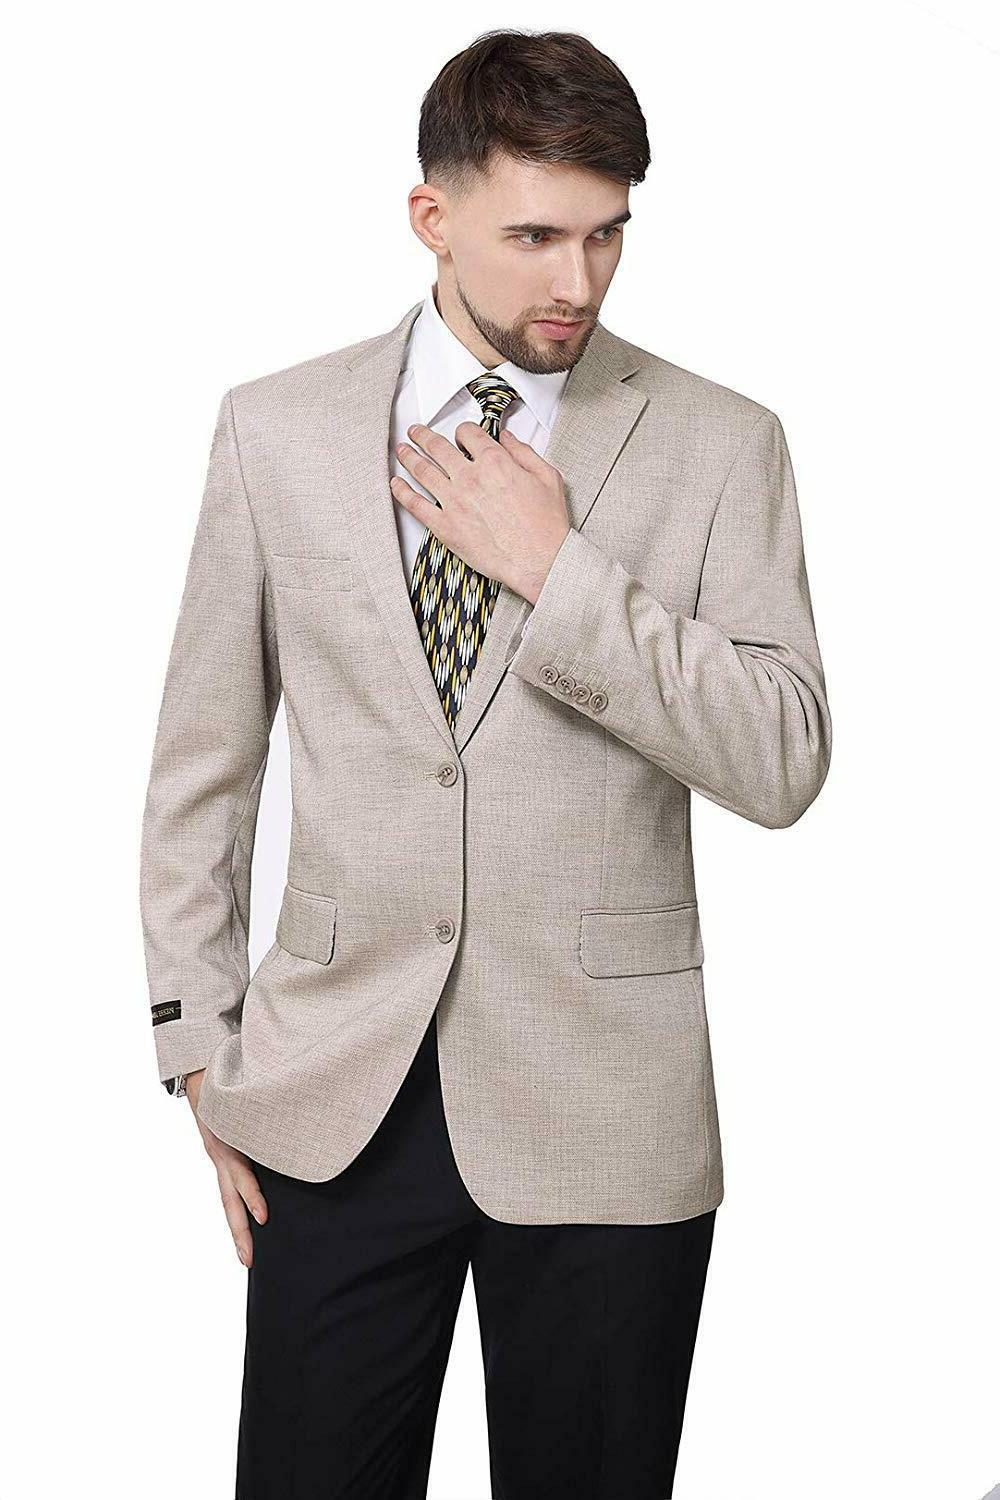 P&L Modern Fit Two-Button Blazer Suit Jacket Dove